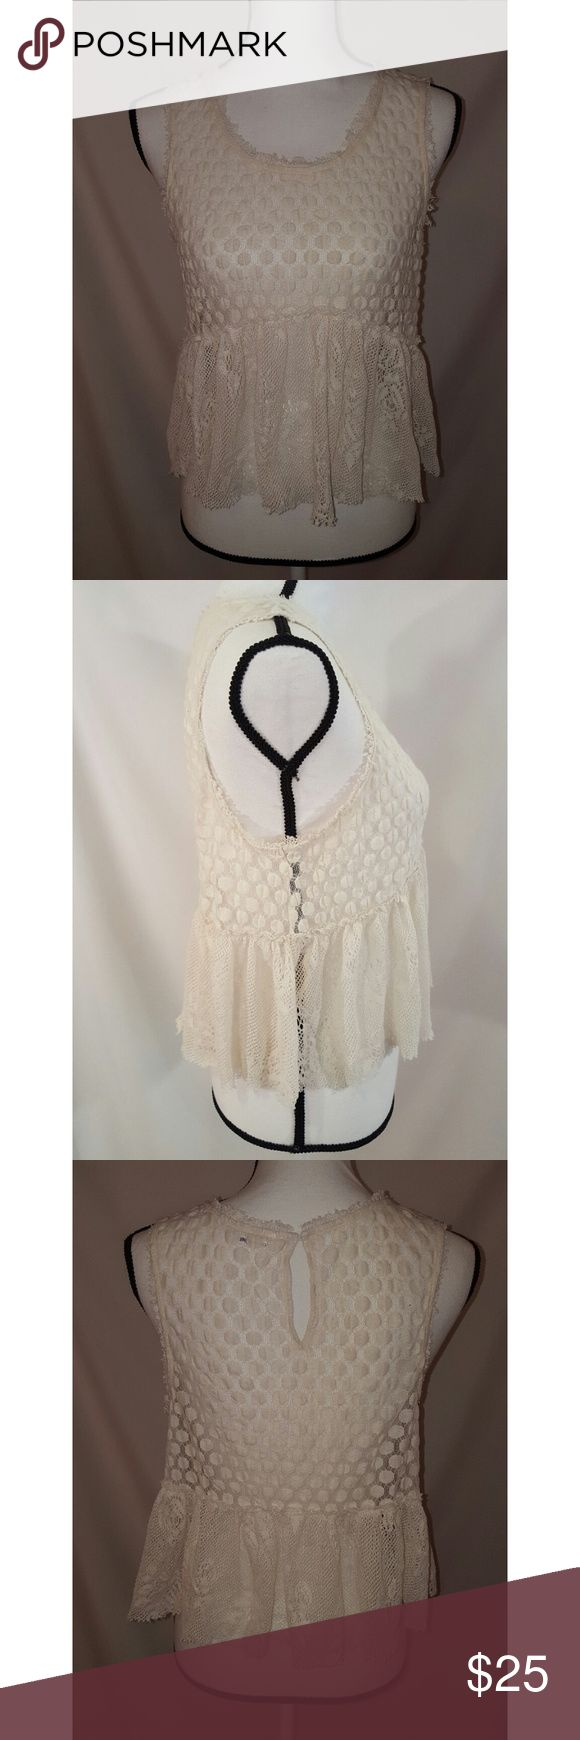 """Free People Ivory Lace Baby Doll Boho Top Medium This is an off white lace polka dot flowy short boho top. It is in very good condition.   Flat across pitto pit 18.5"""" waist 18.75"""" Length 20#  Storage location #275 Item # 2667 Free People Tops"""